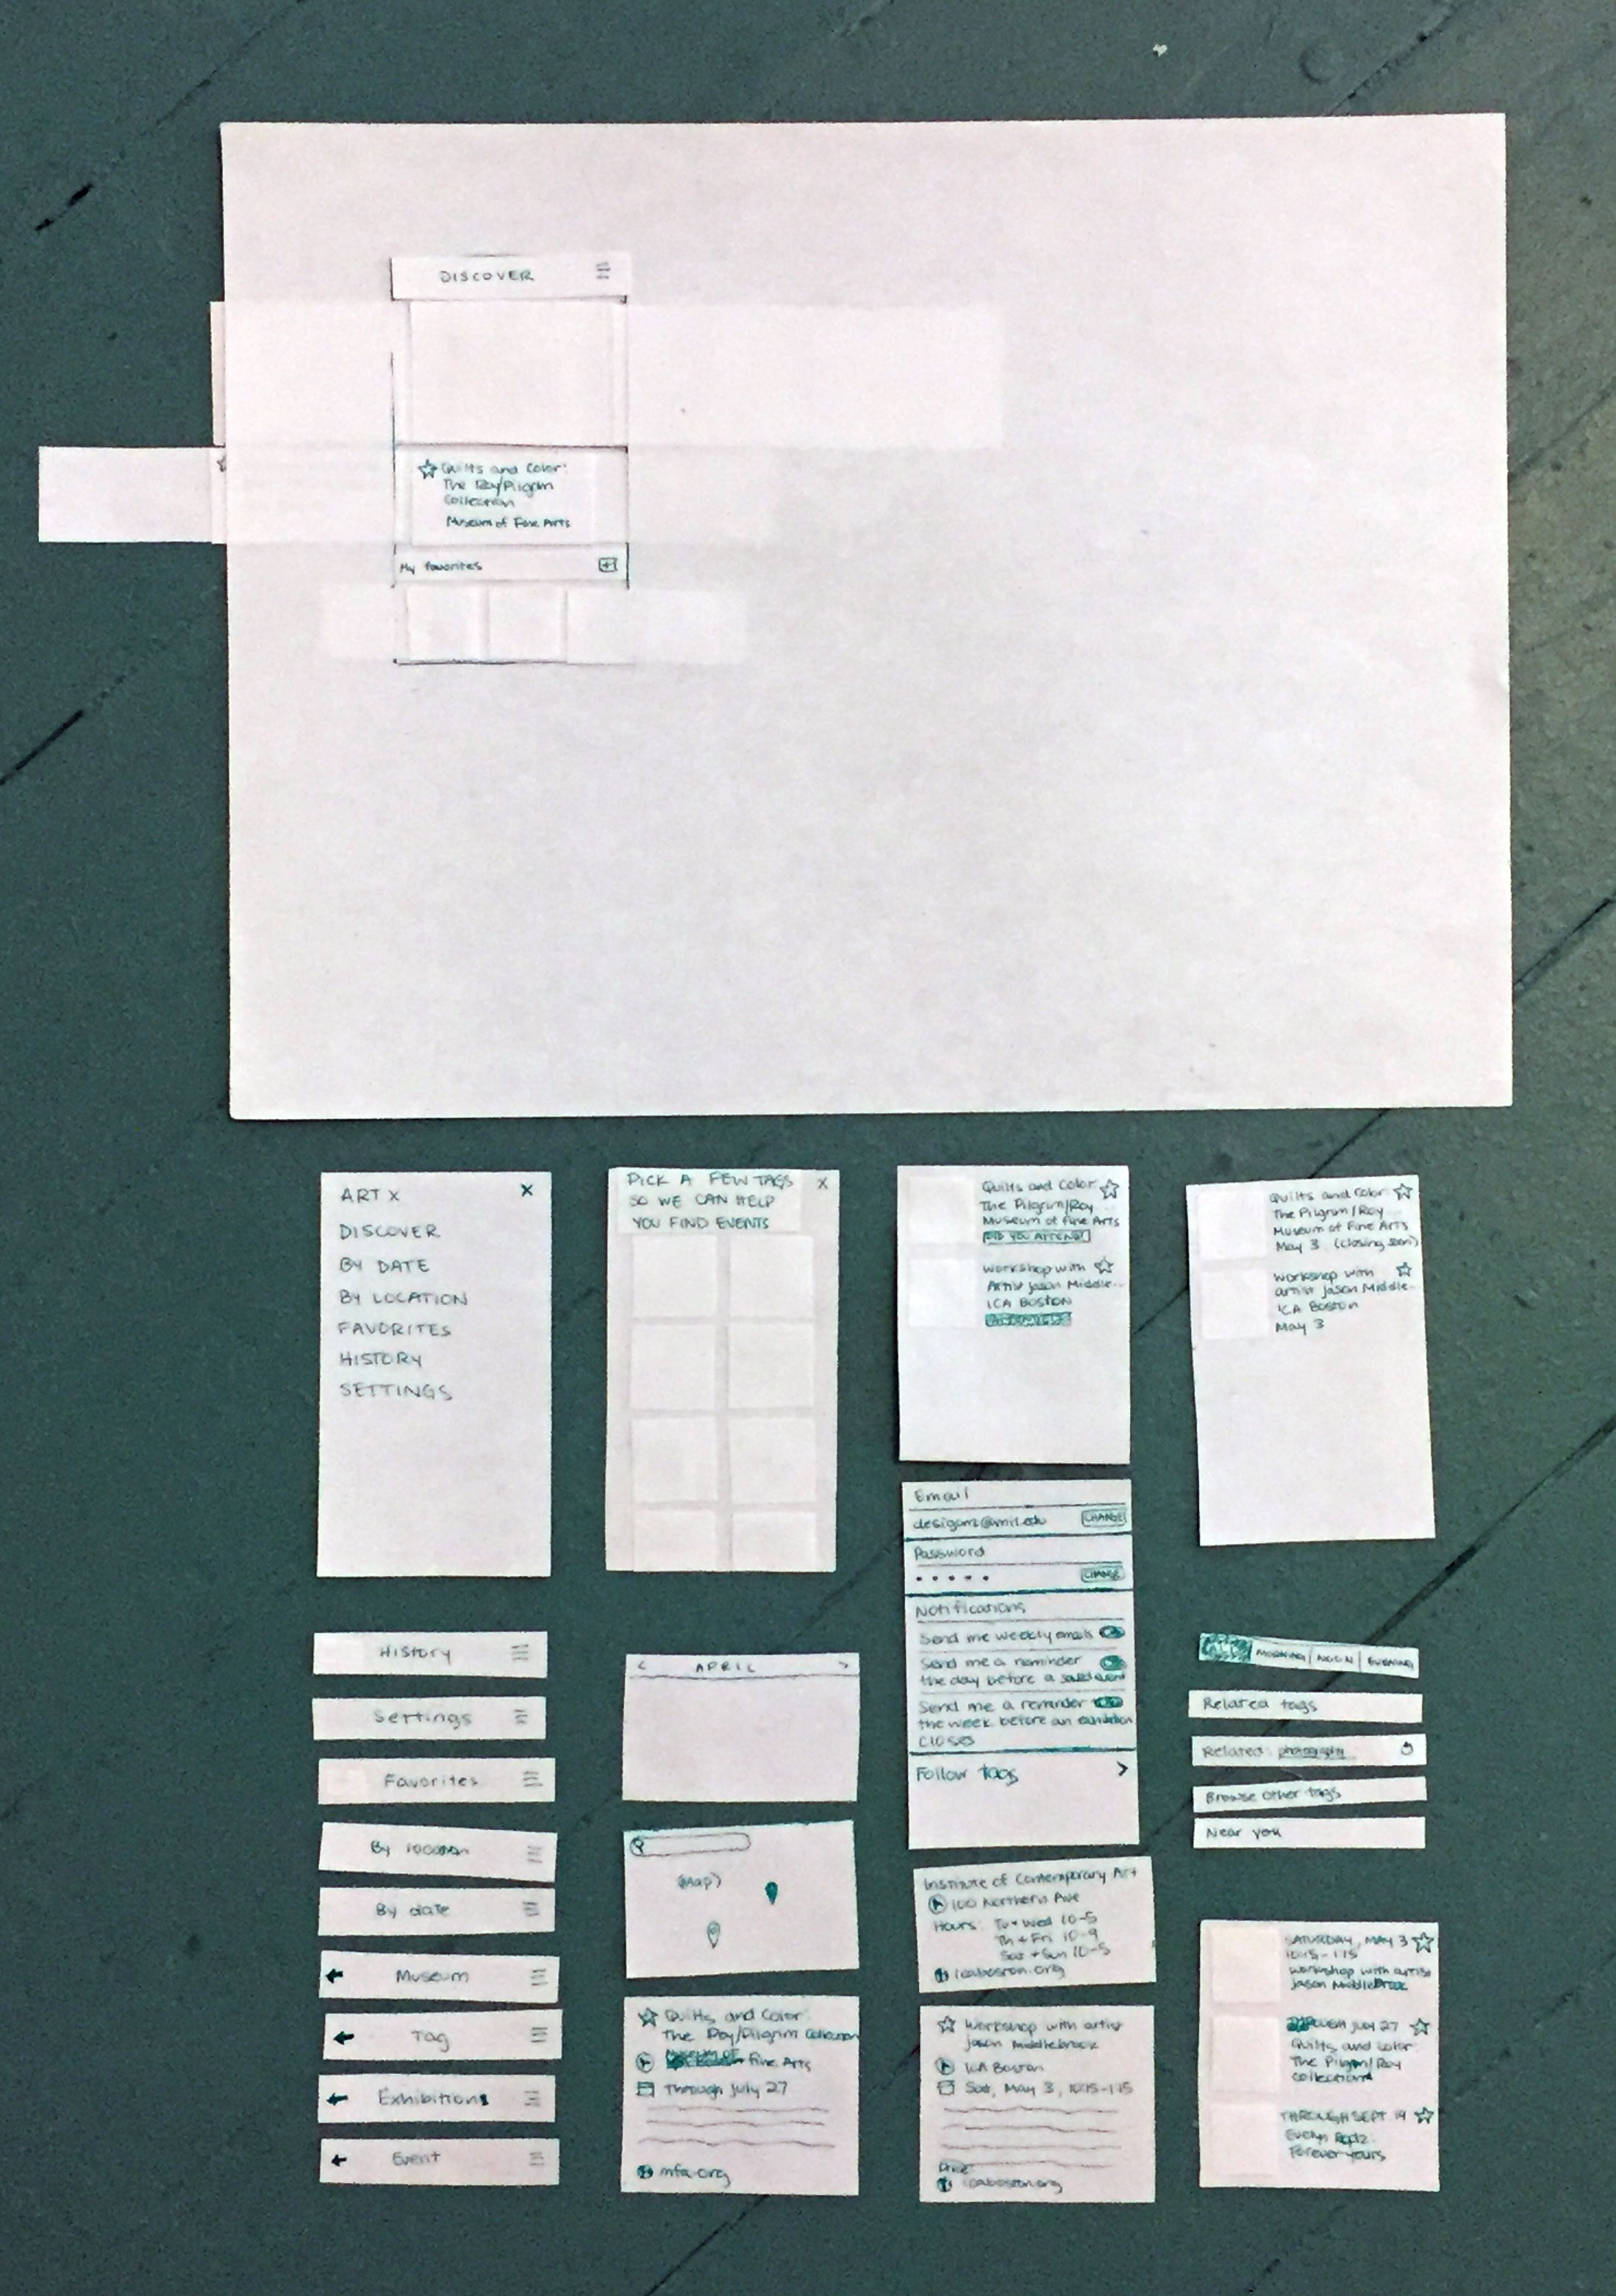 Bird's eye view of paper prototypes of different interface elements